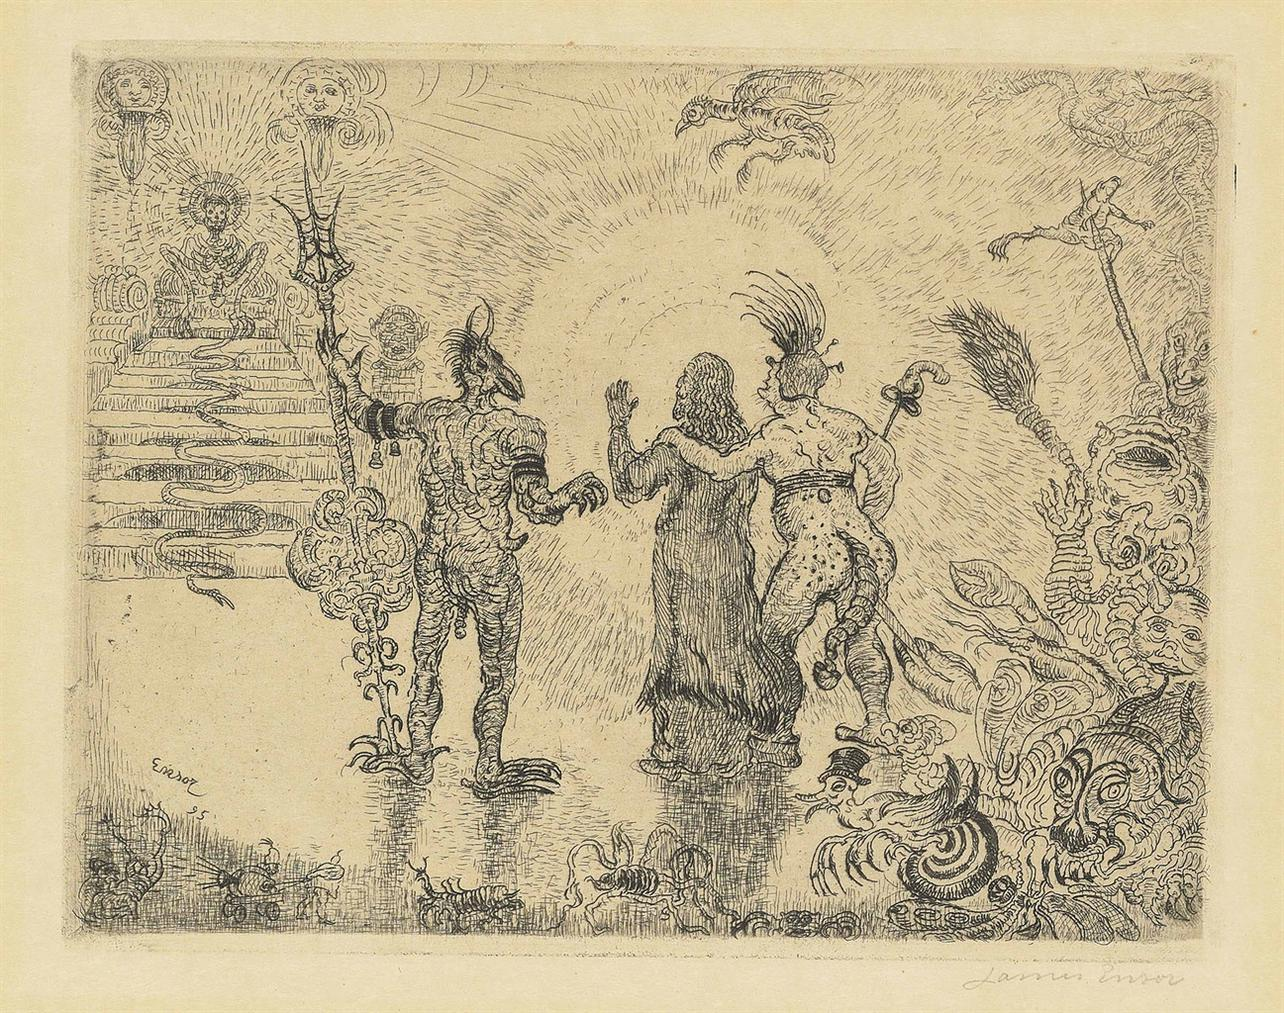 James Ensor-Les Diables Dzitts Et Hihanox Conduisant Le Christ Aux Enfers (The Devils Dzitts And Hihanox Leading Christ To Hell)-1895